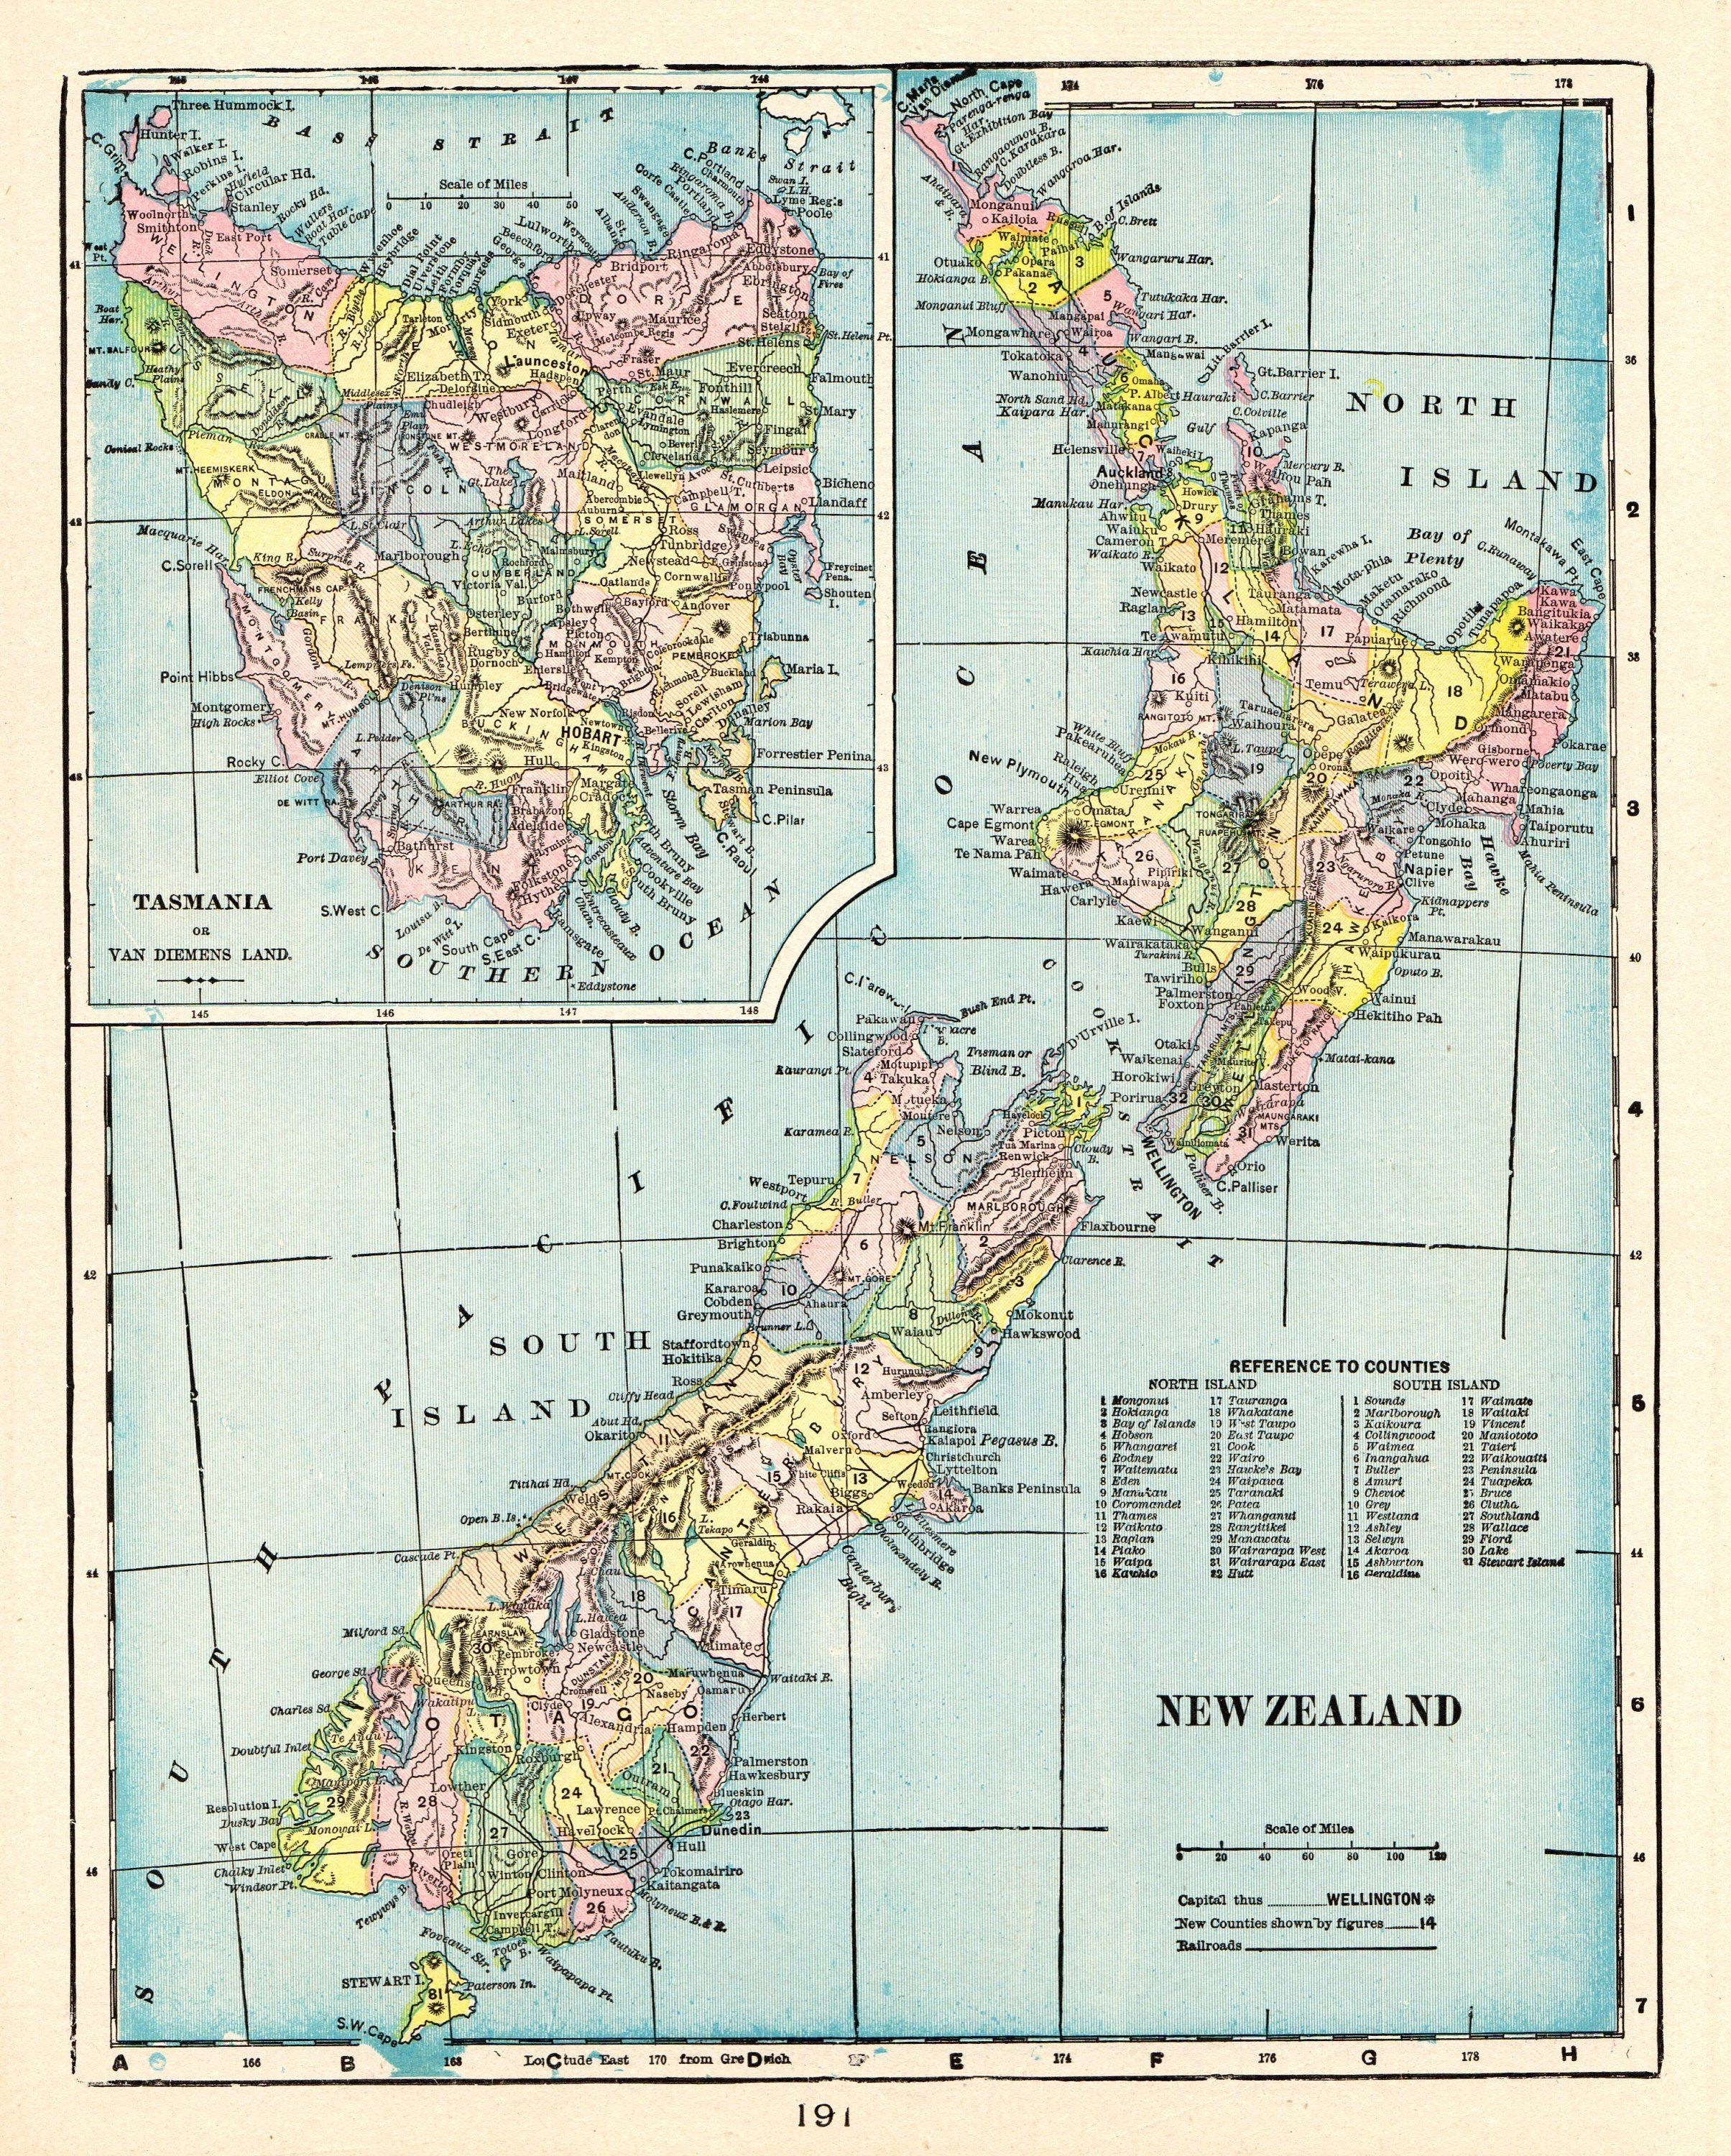 1902 Antique NEW ZEALAND Map Vintage Of New Zealand Print Over 100 Year Old Gallery Wall Art Birthday Gift For Graduation 9129 By Plaindealing On